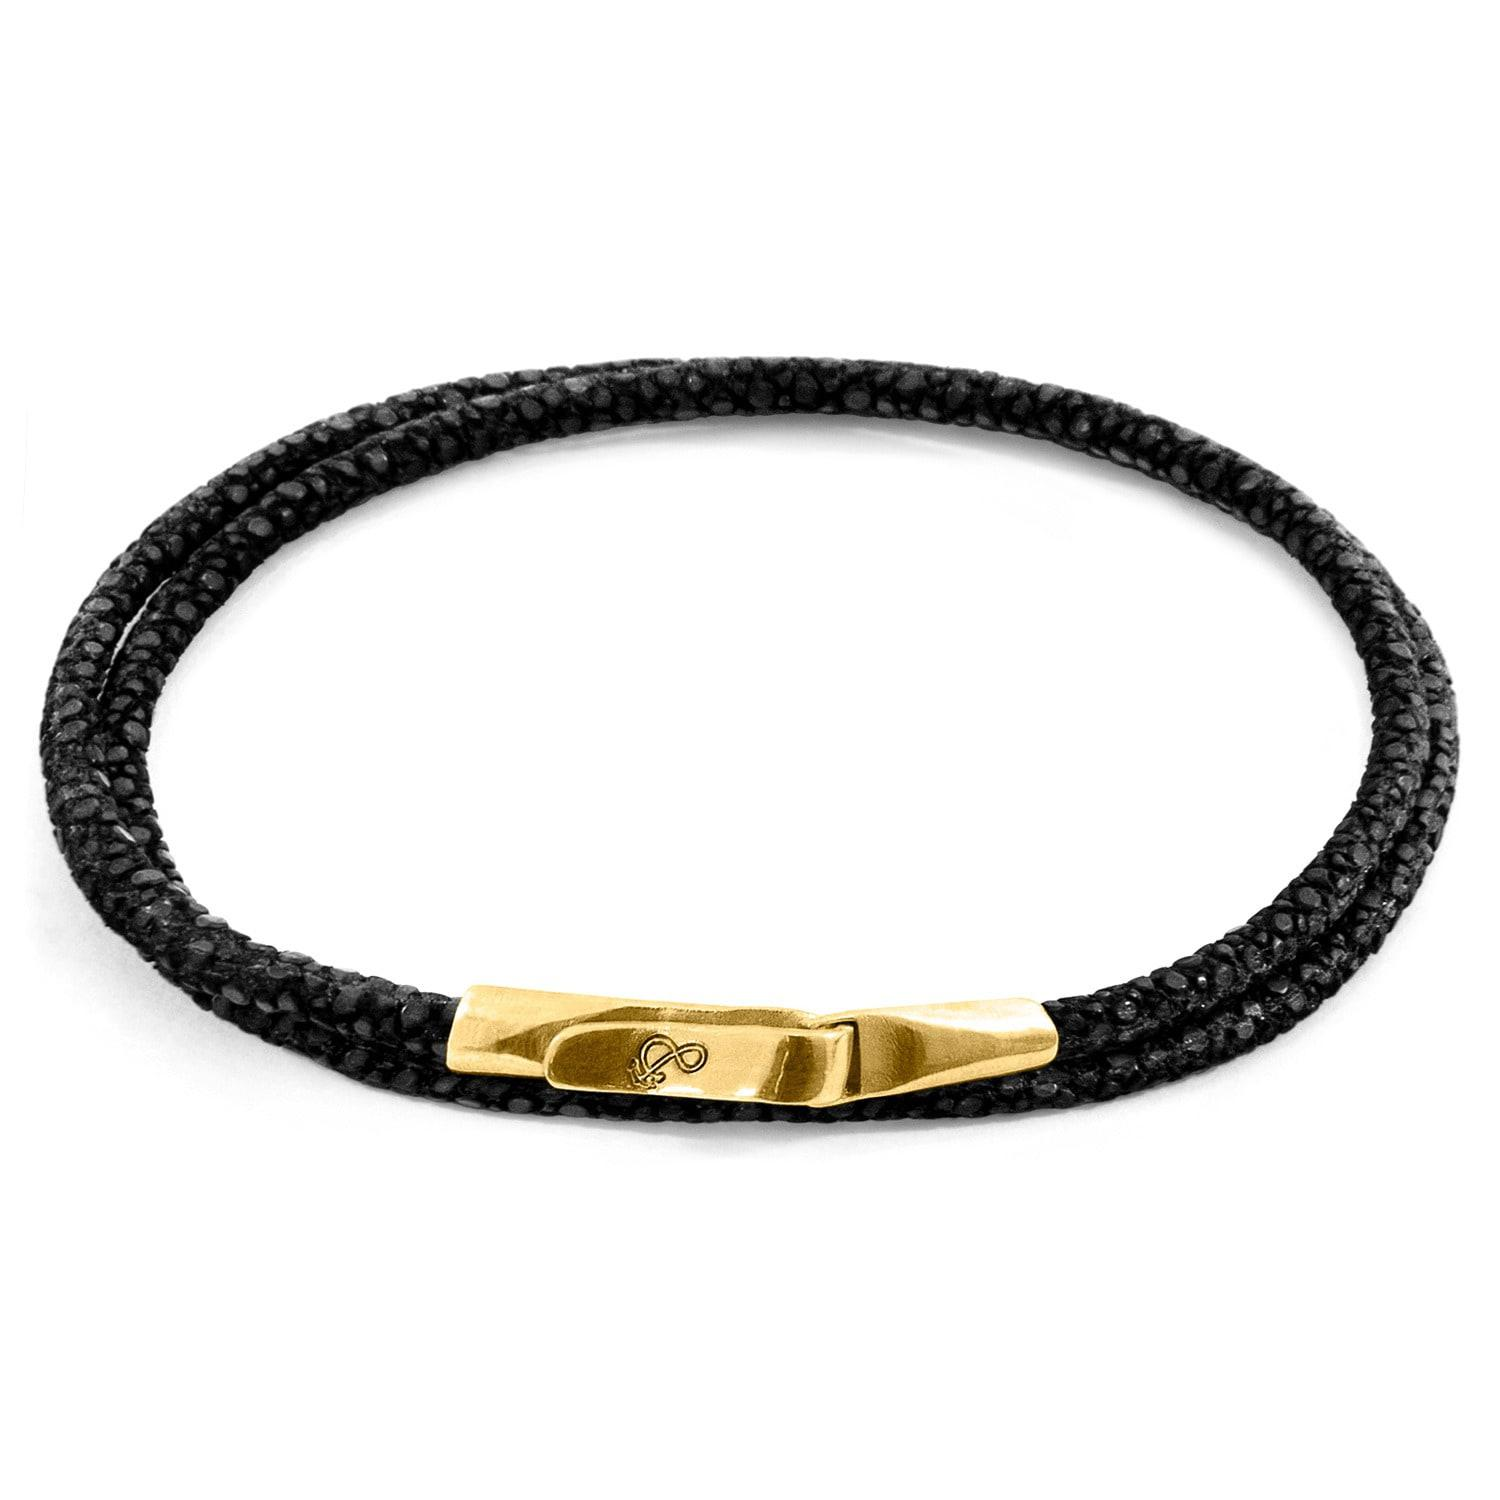 Anchor & Crew Talbot 9kt Yellow Gold & Stingray Leather Bracelet - Shadow Grey